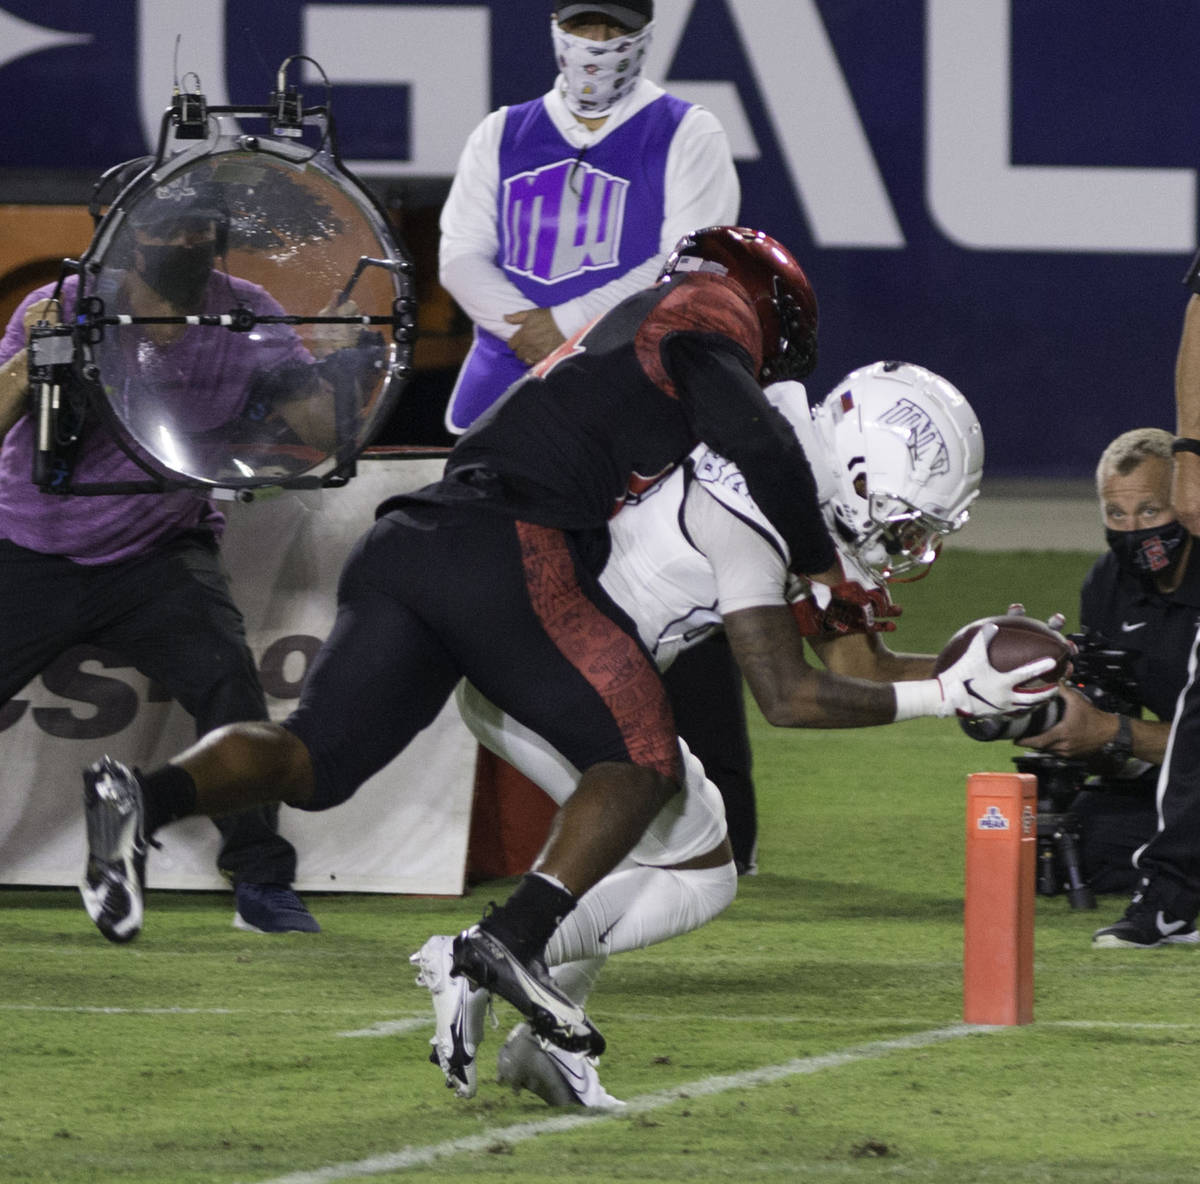 San Diego State's Tariq Thompson tries to prevent the touchdown by UNLV's Steve Jenkins dur ...